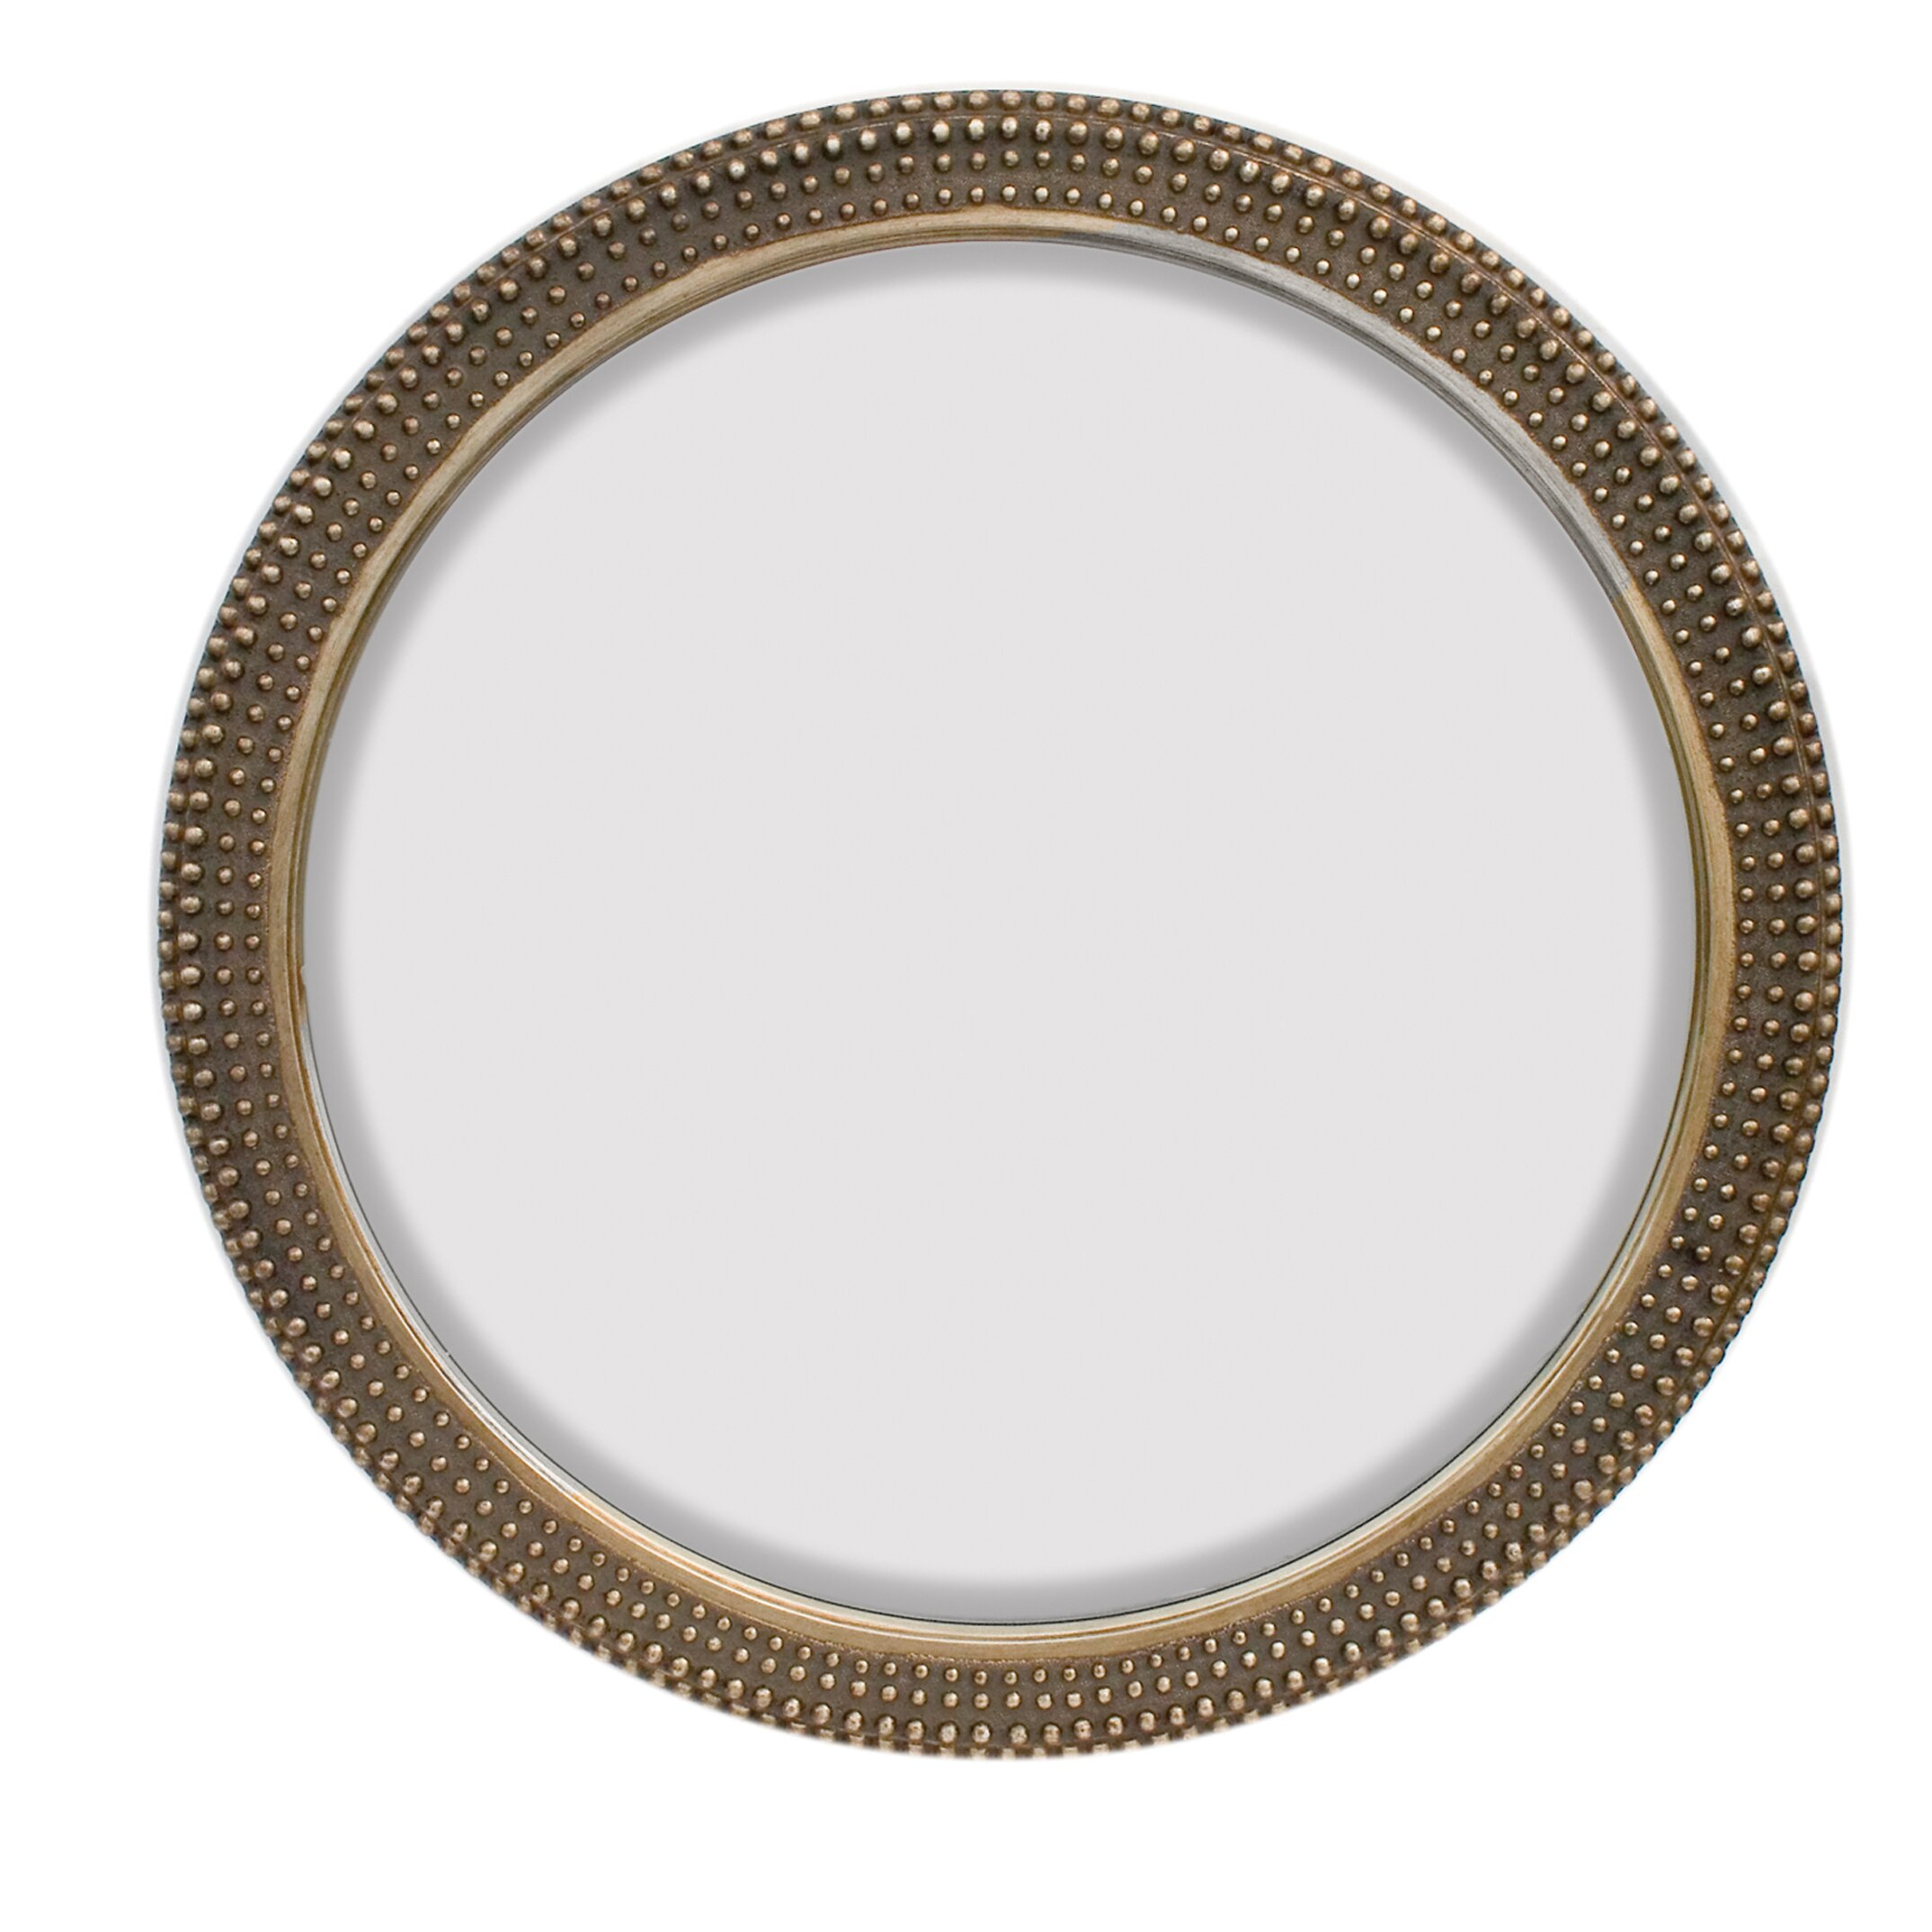 Majestic mirror large round traditional silver decorative Round decorative wall mirrors